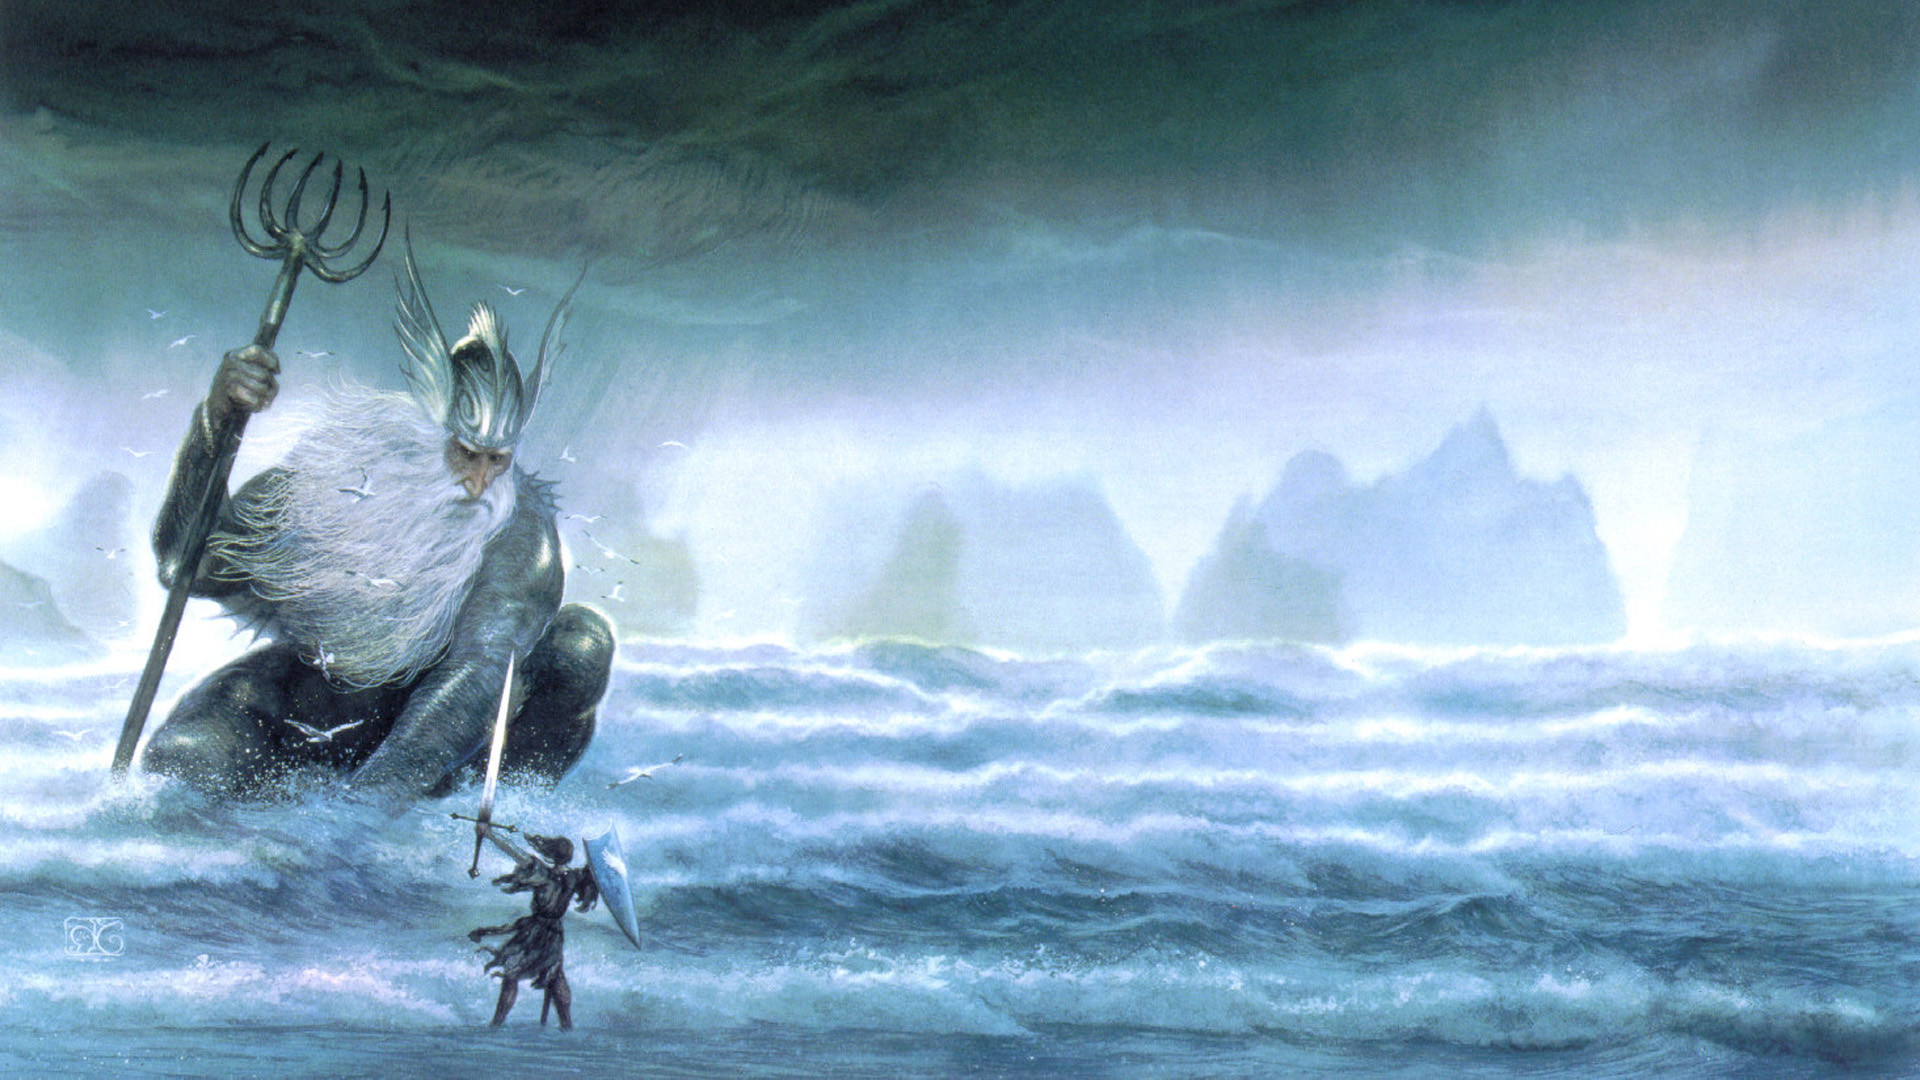 Res: 1920x1080, J. R. R. Tolkien, The Silmarillion, Fantasy Art, John Howe